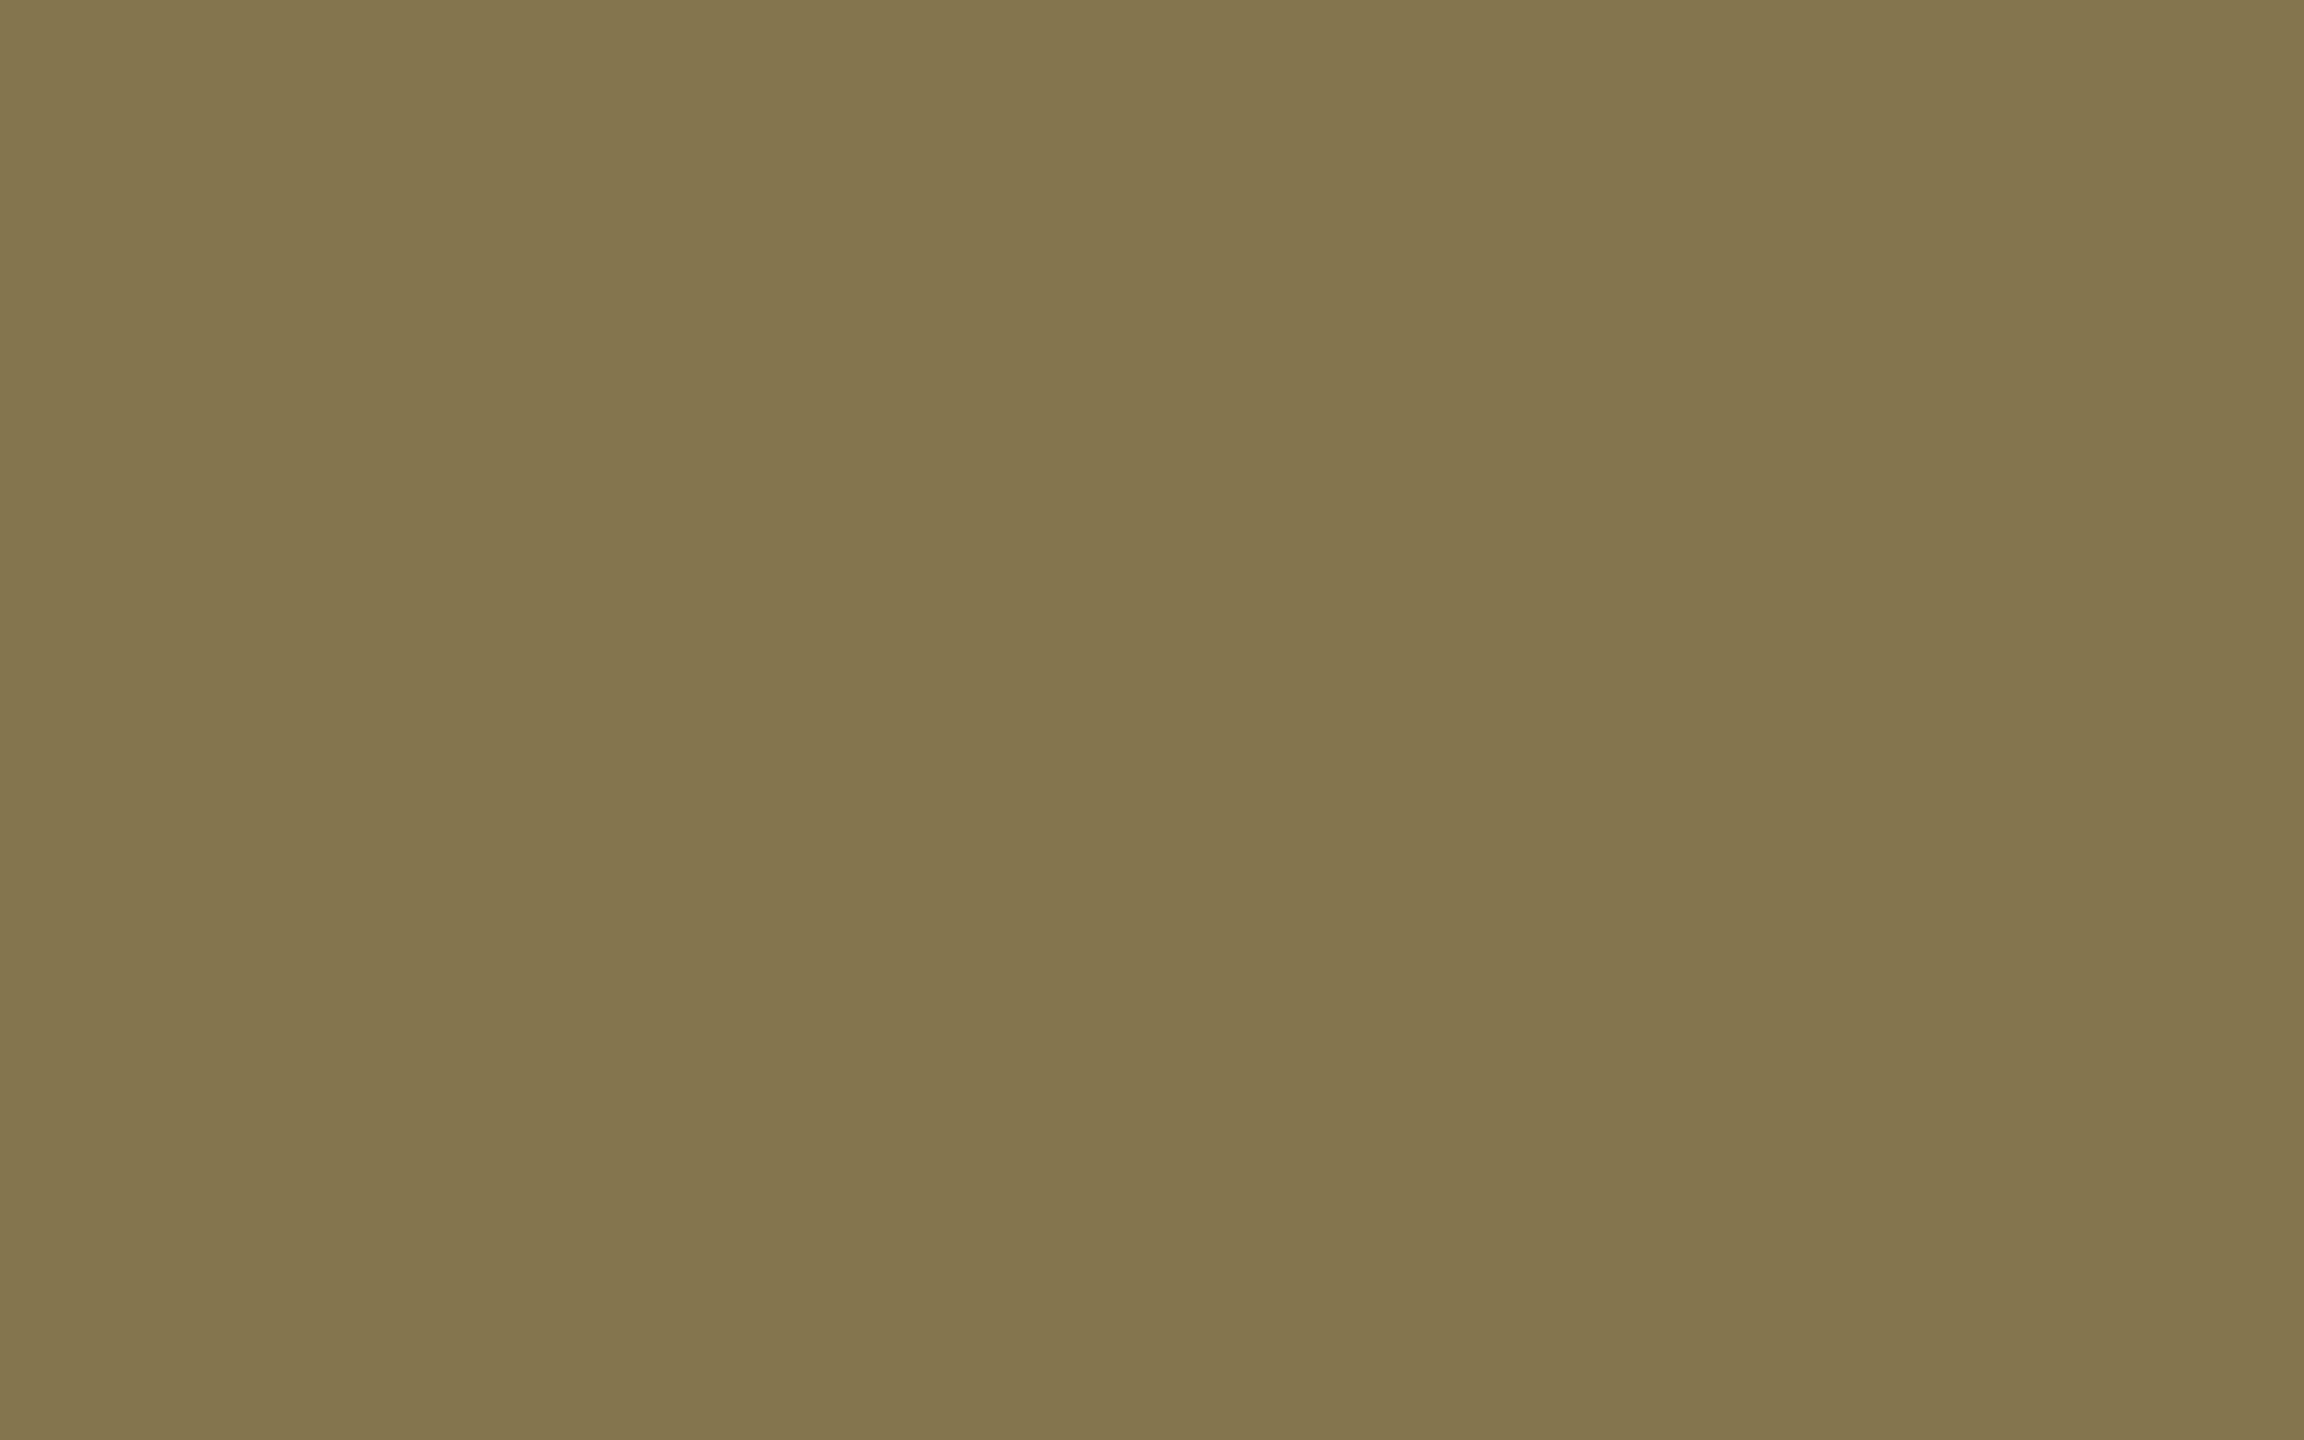 2304x1440 Gold Fusion Solid Color Background